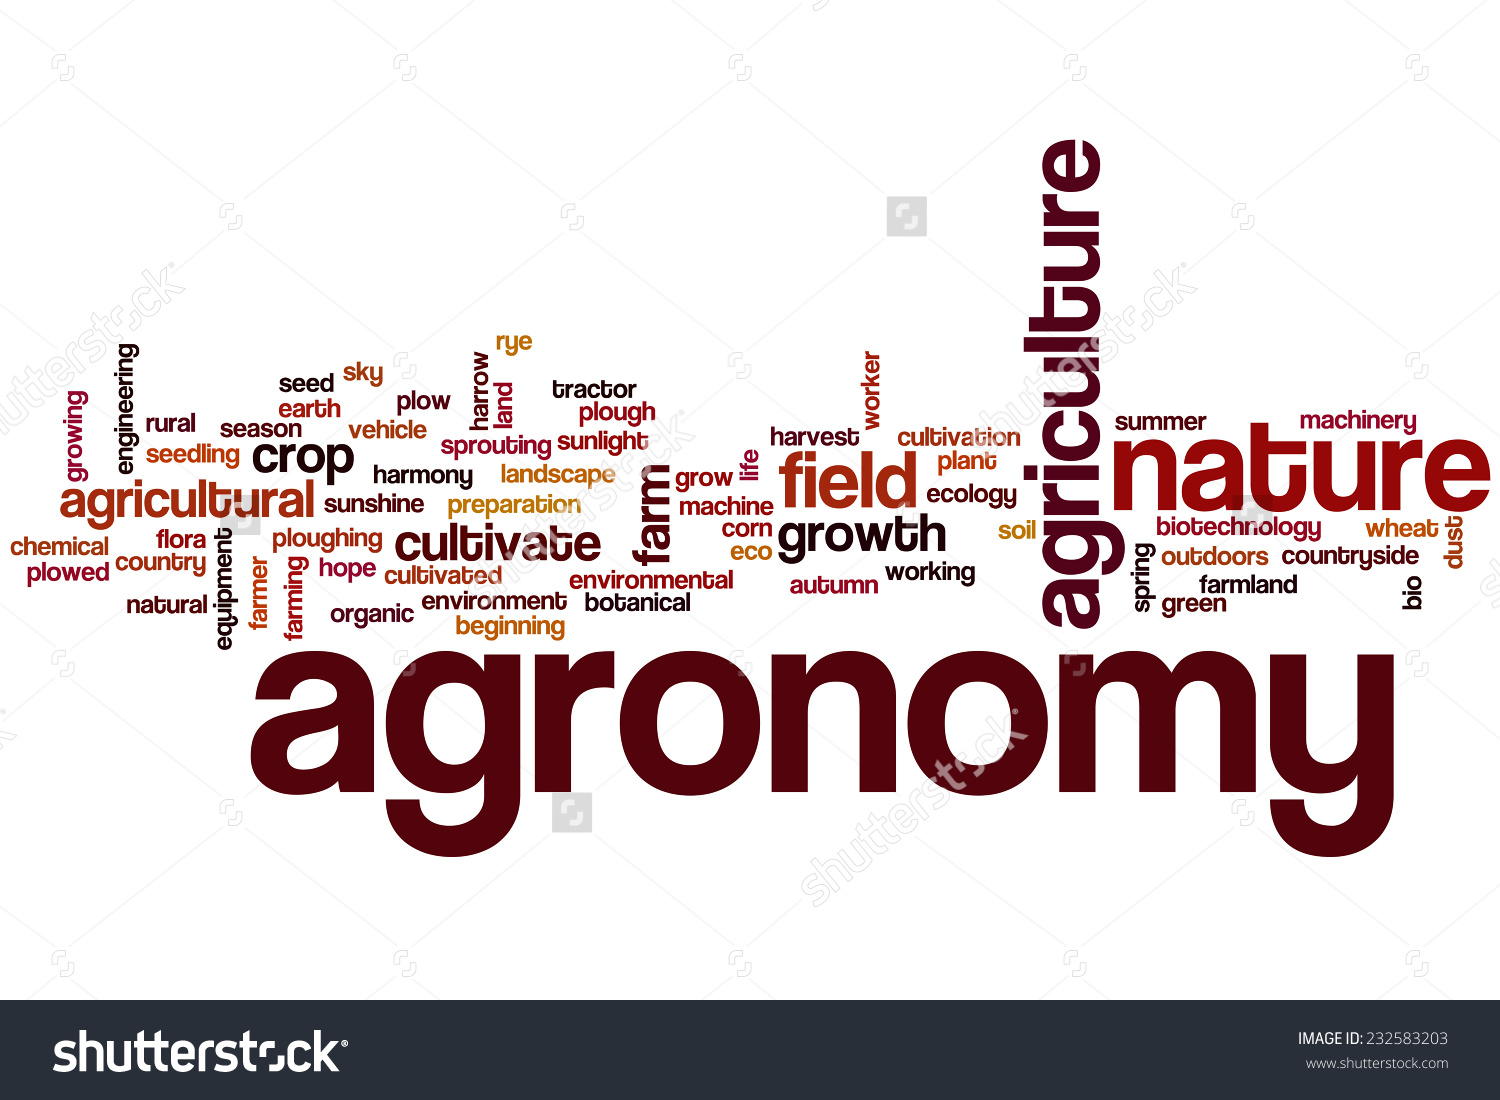 Agronomy Word Cloud Concept Stock Illustration 232583203.